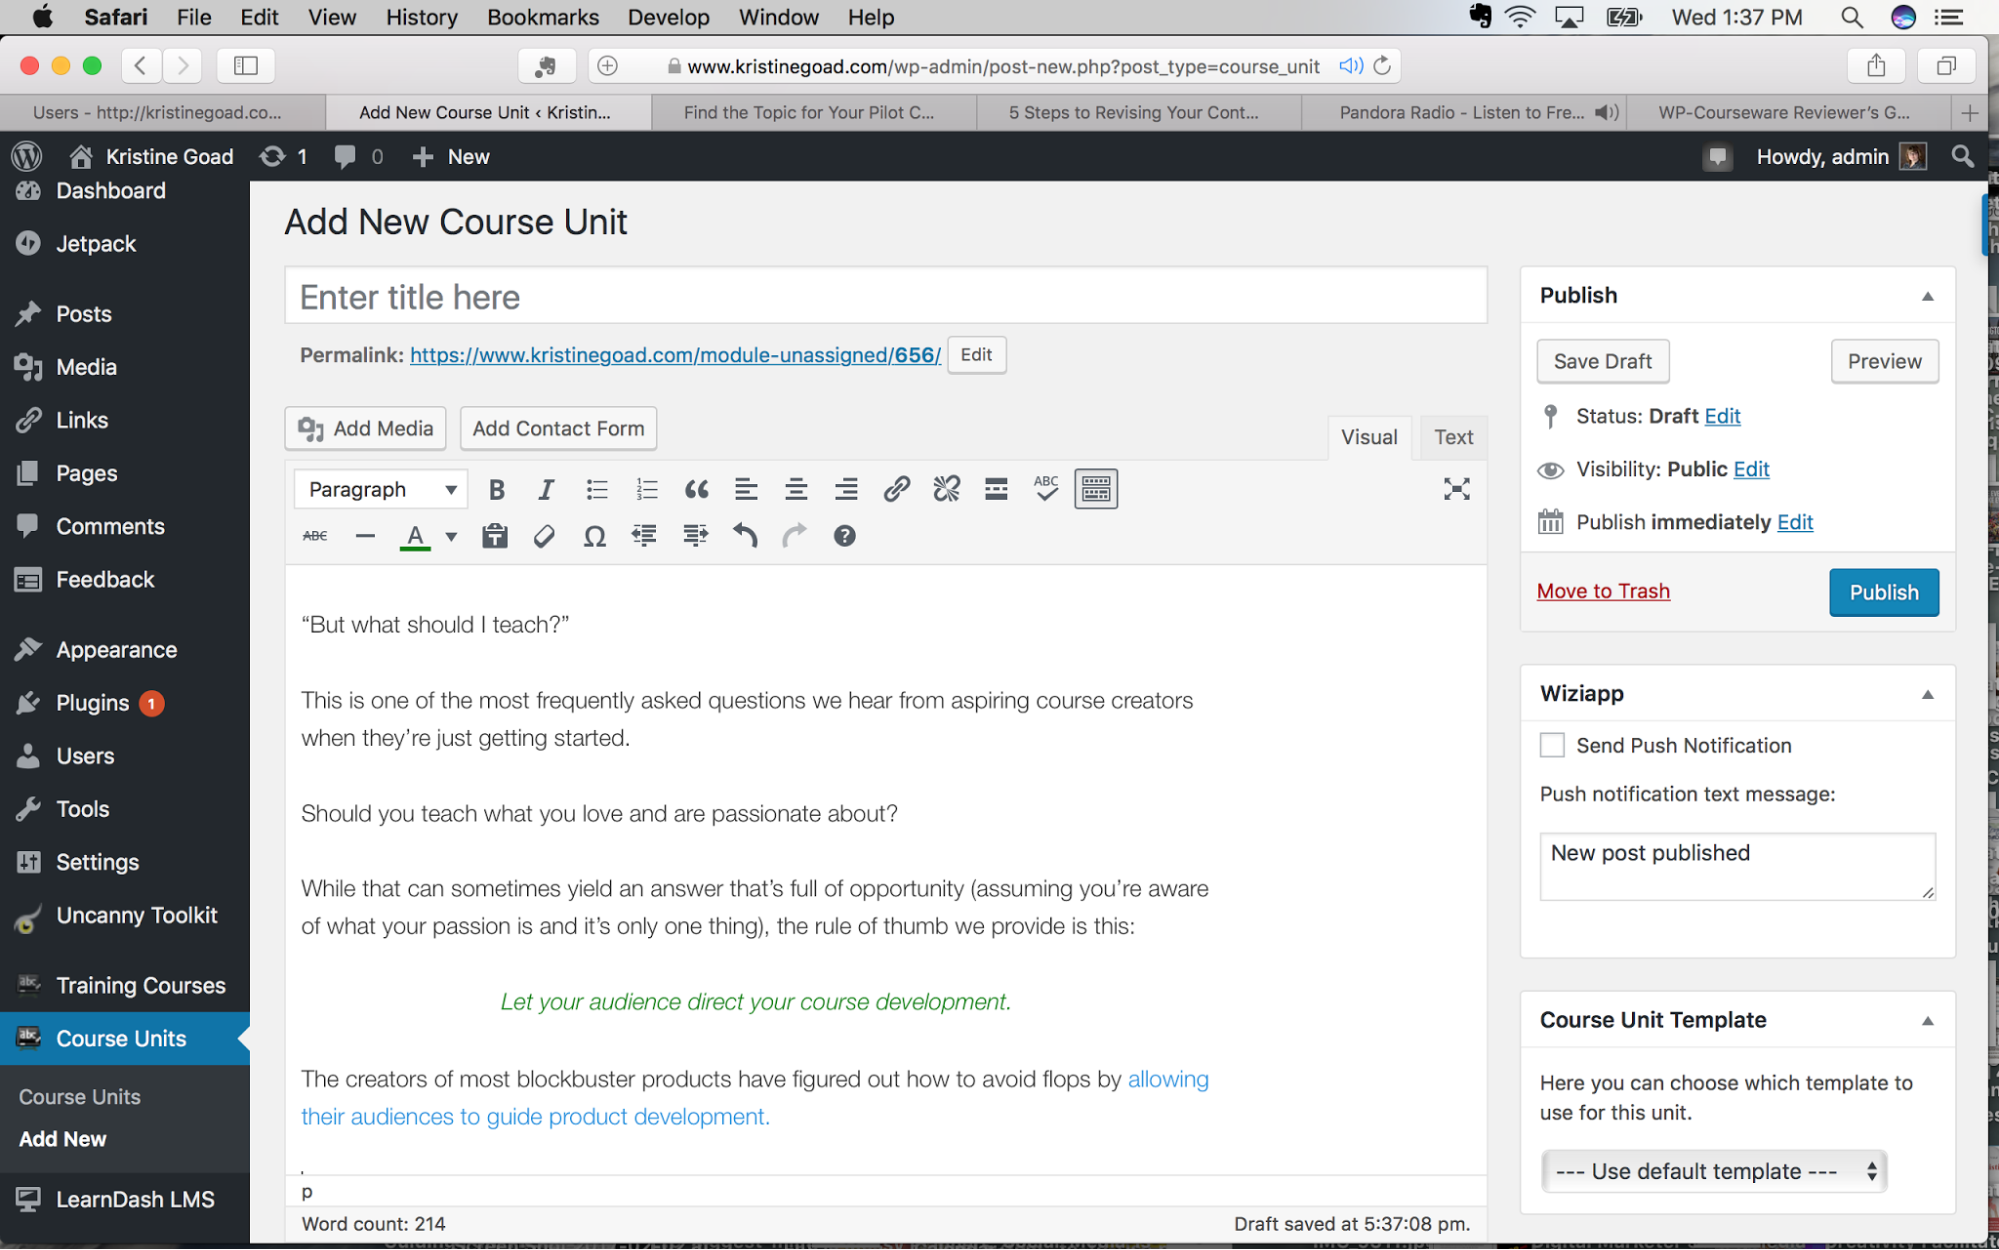 WP Courseware visual editor view of Add New Course